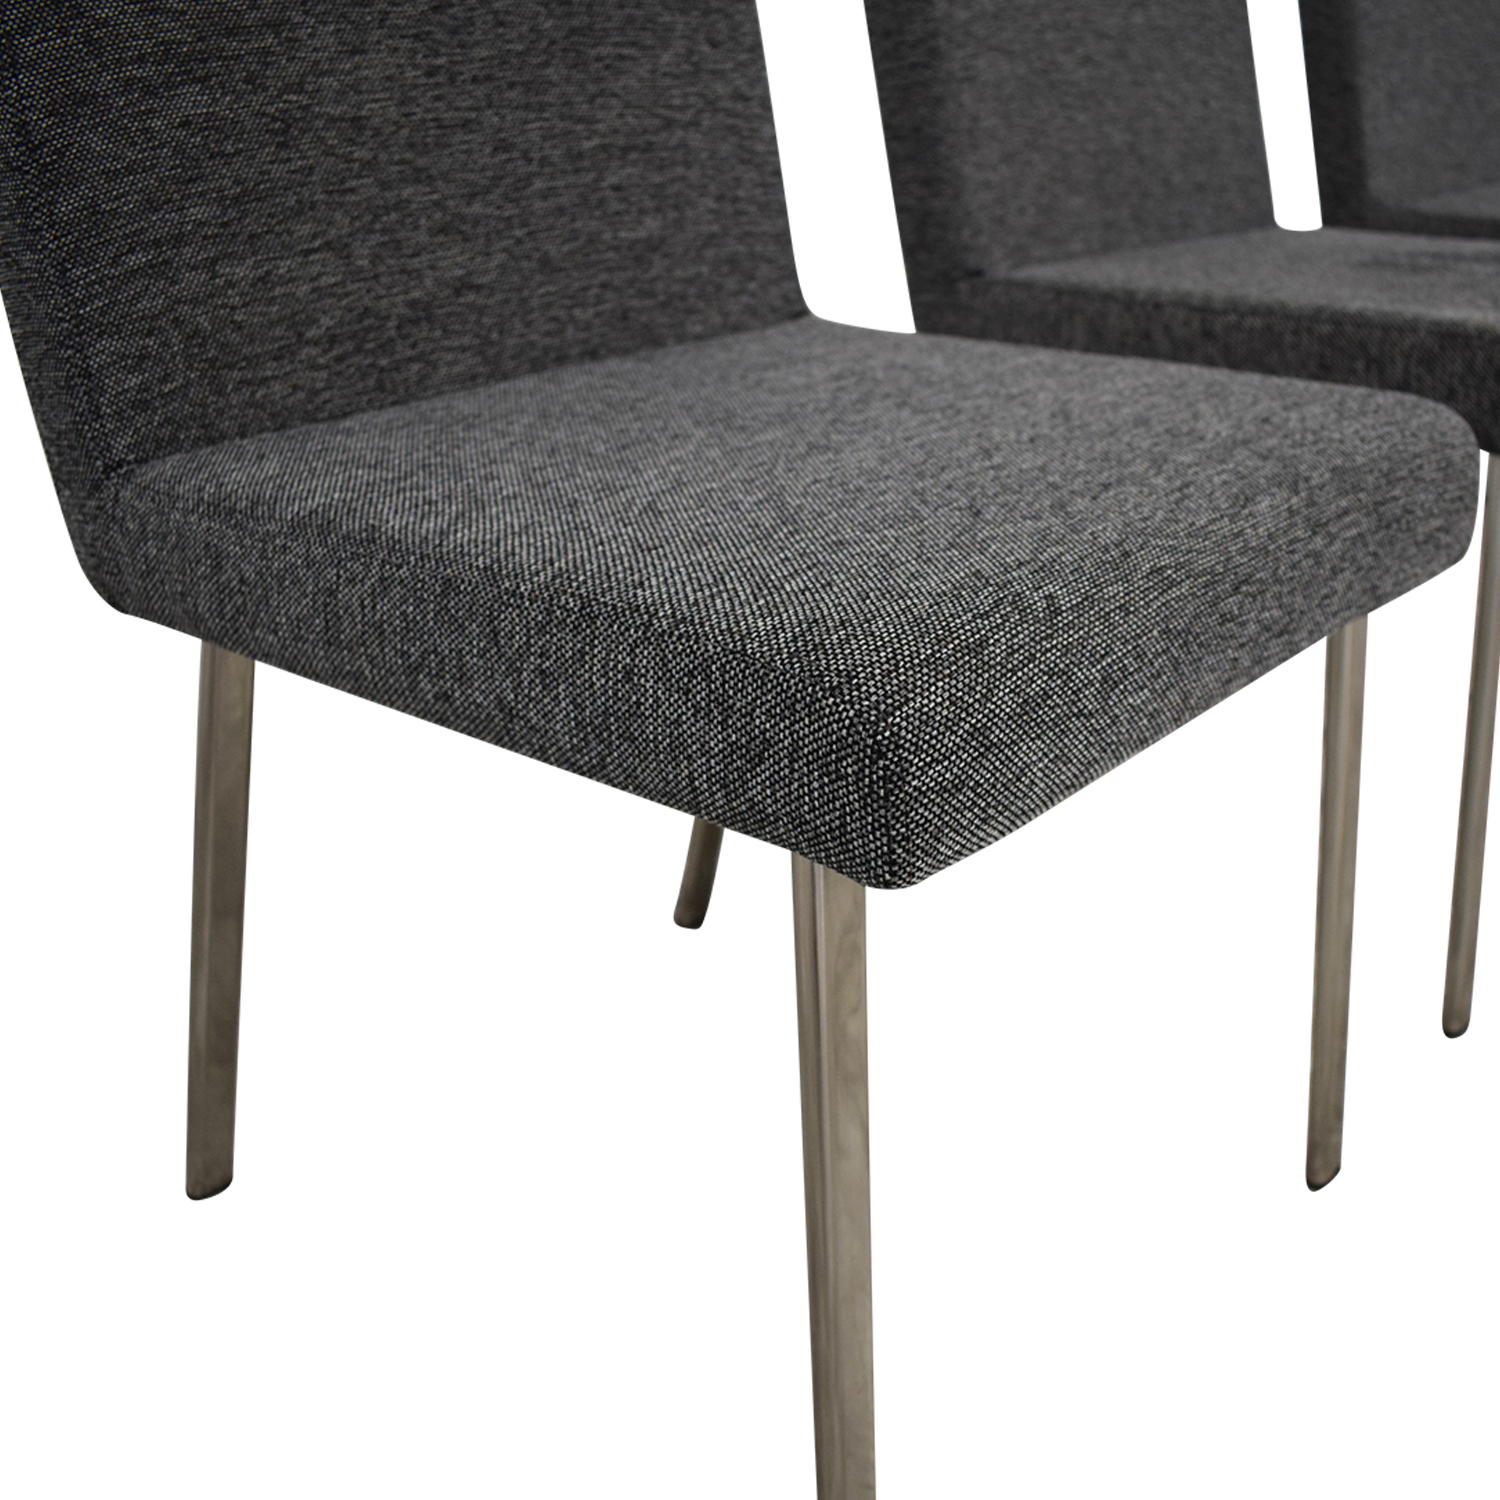 Swell 53 Off Cb2 Cb2 Functional Dining Room Chairs Chairs Caraccident5 Cool Chair Designs And Ideas Caraccident5Info